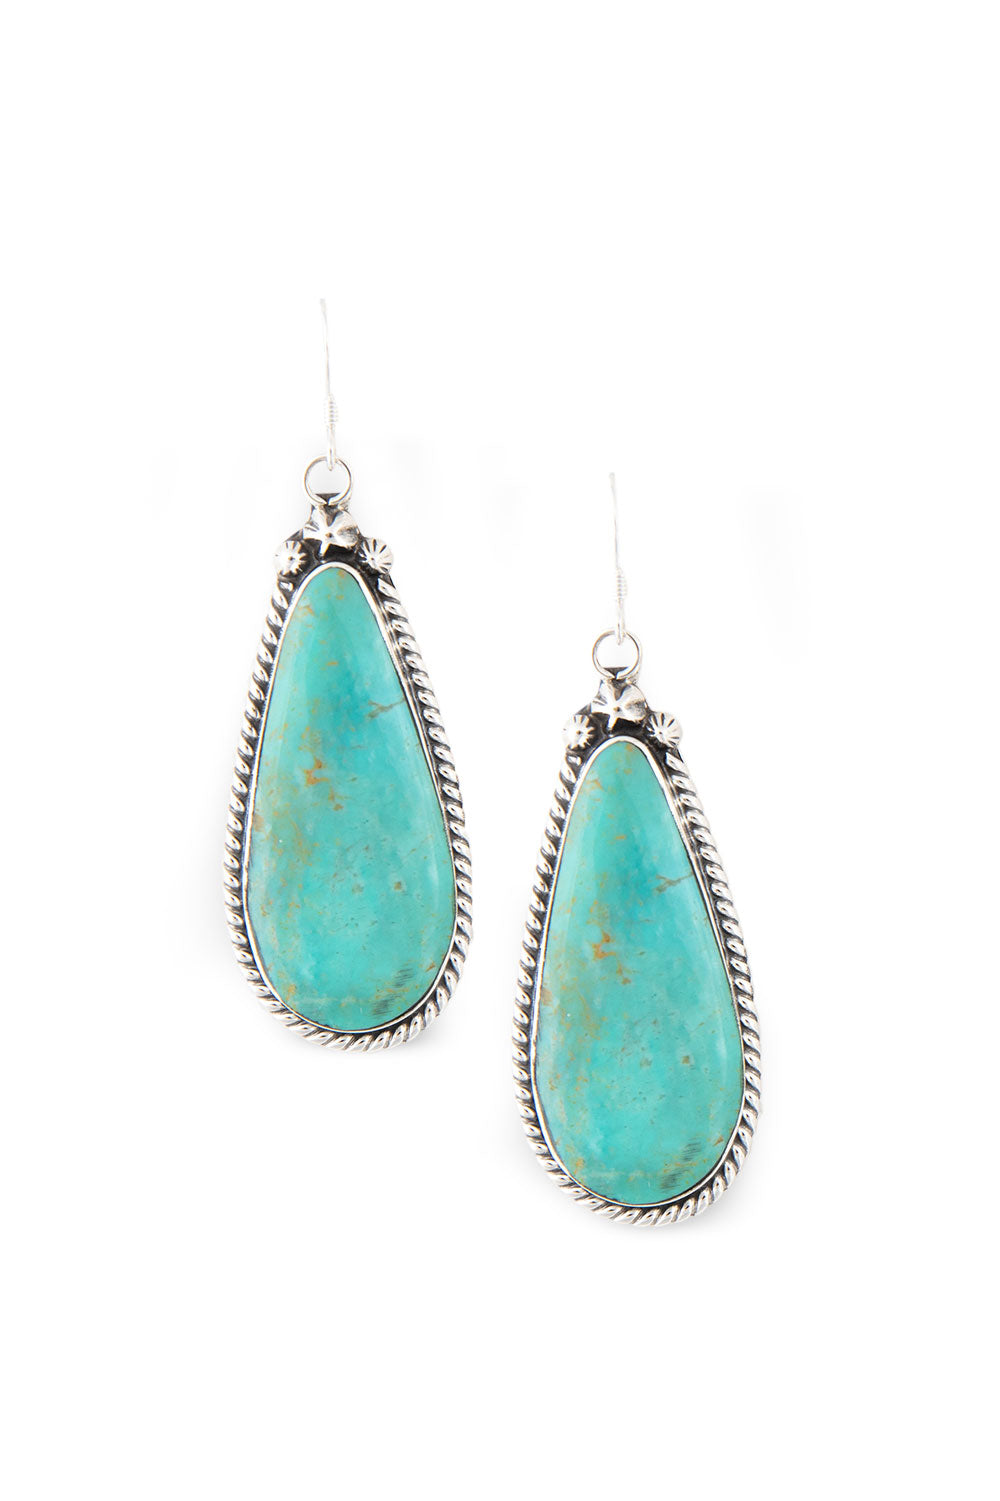 Earrings, Slab, Turquoise, Hallmark, 396D-1